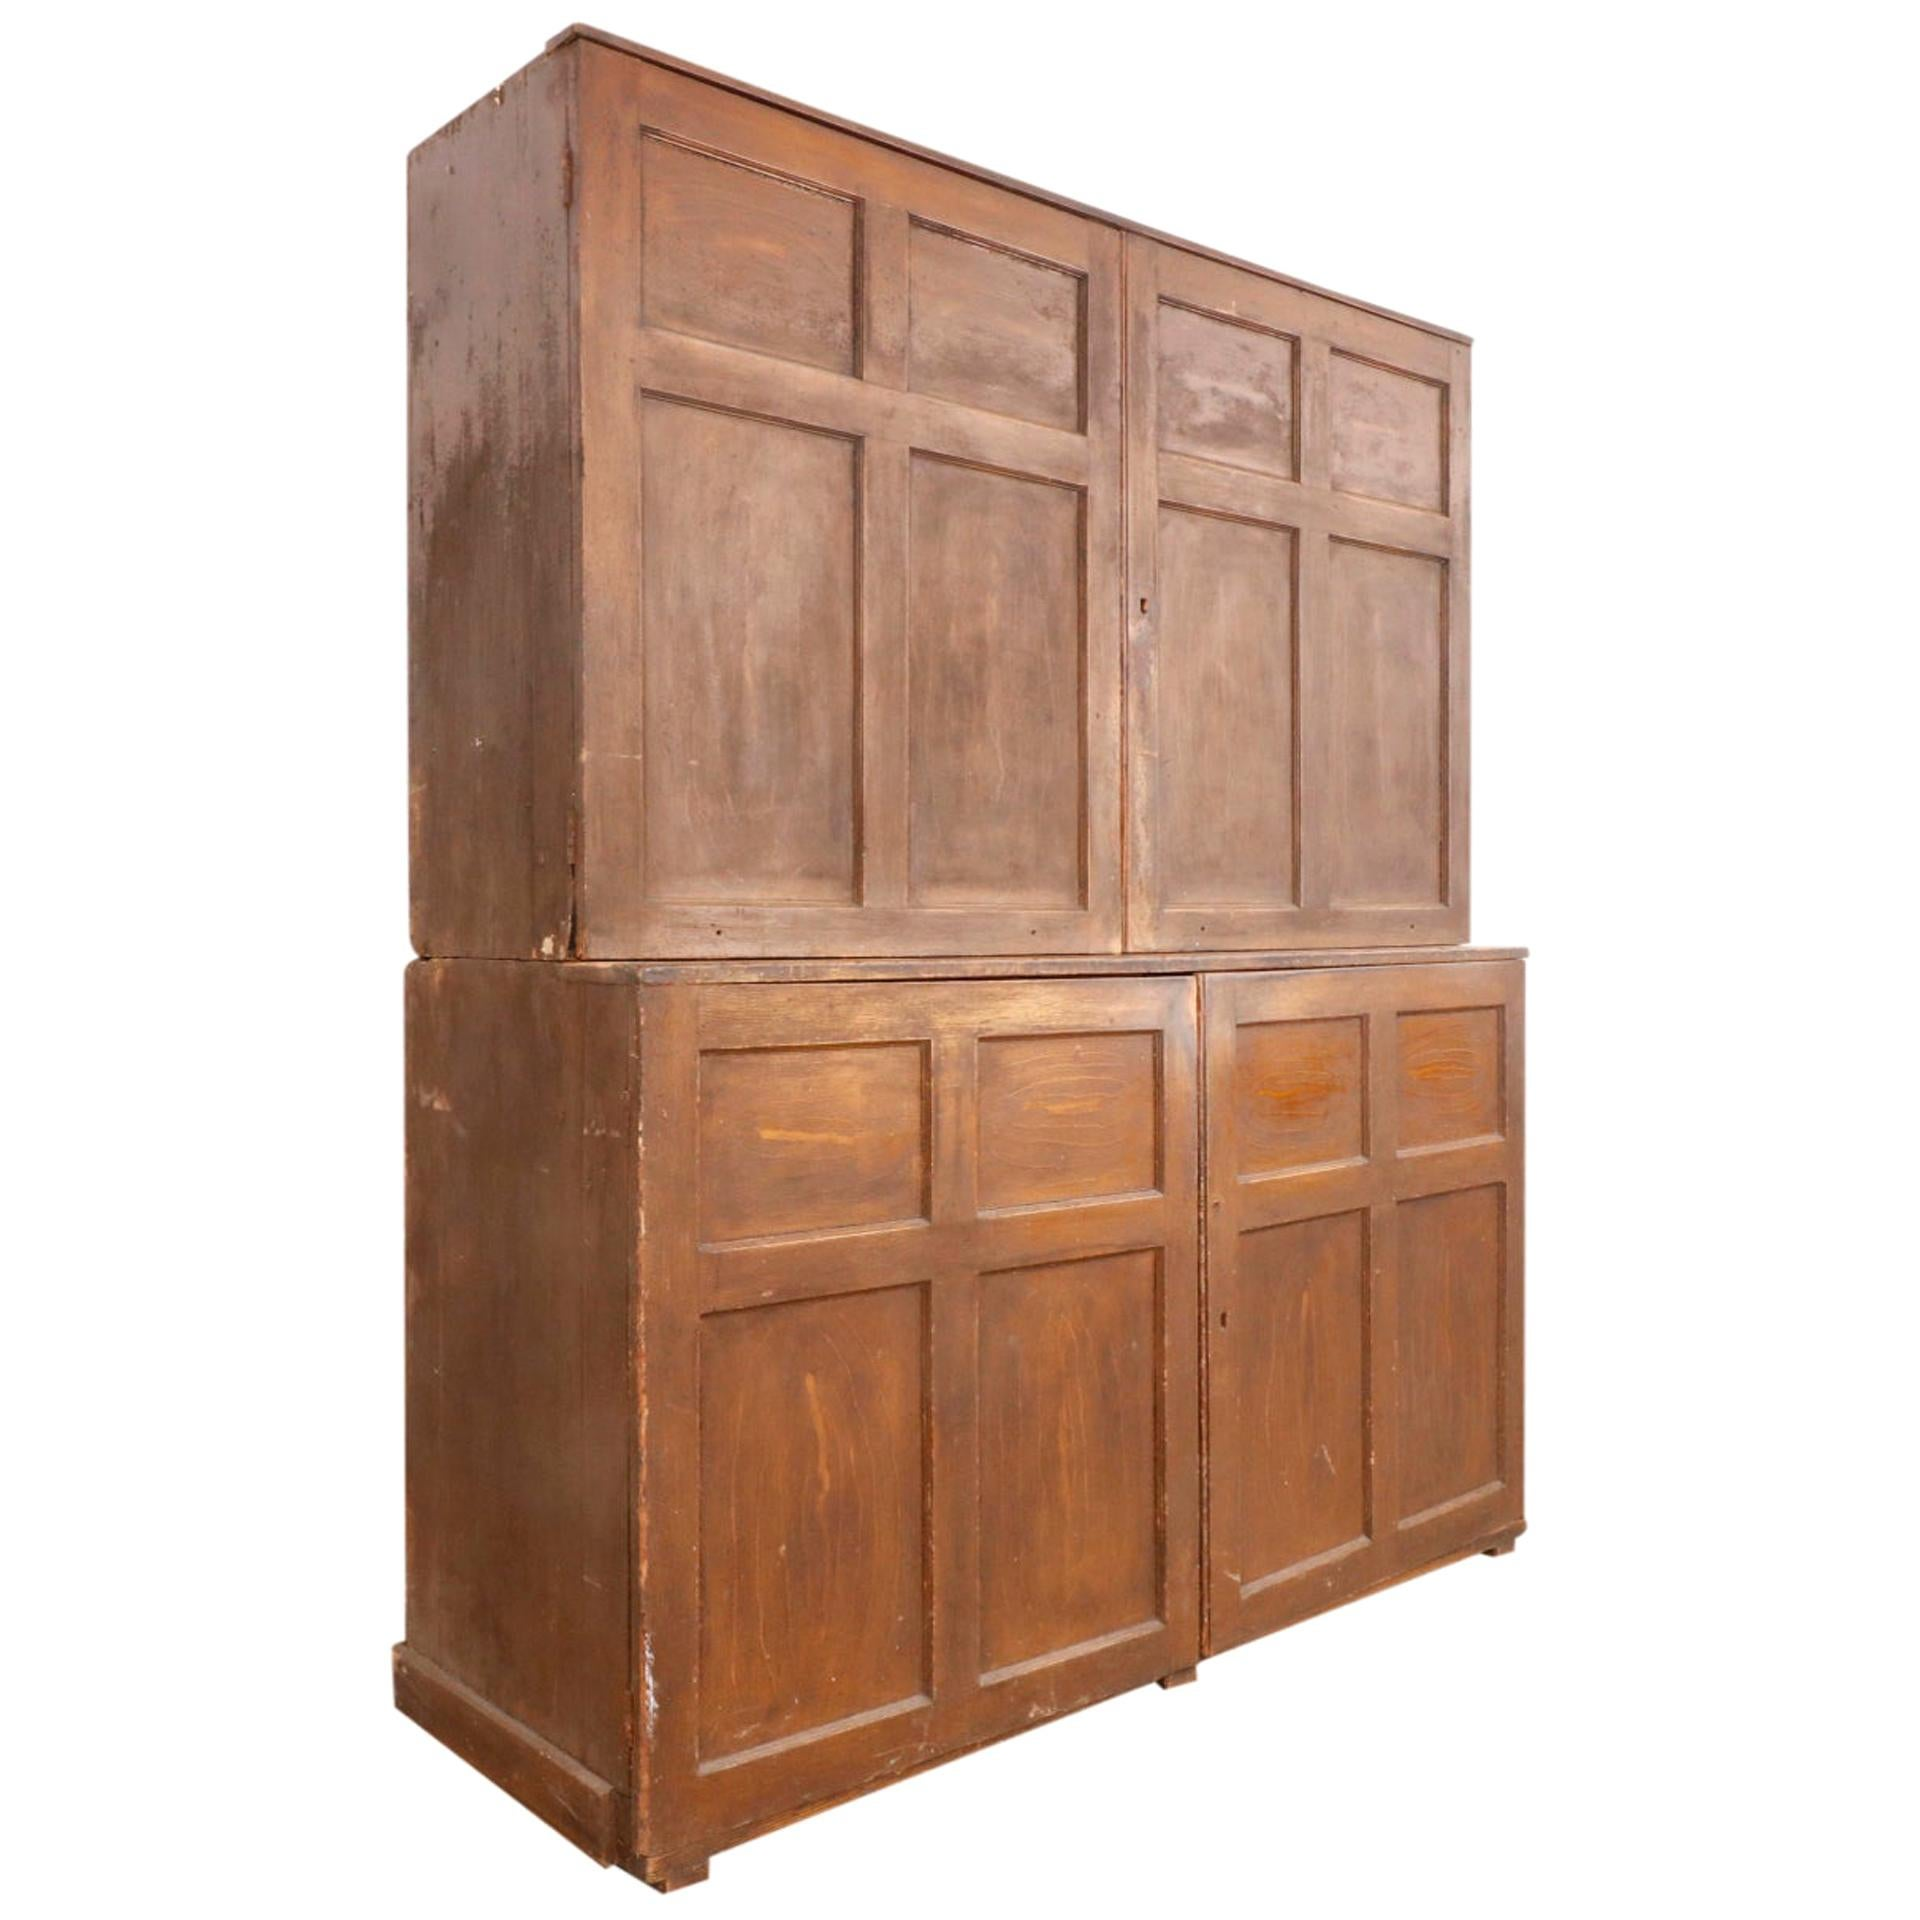 Large 19th Century American Grain Painted Cupboard